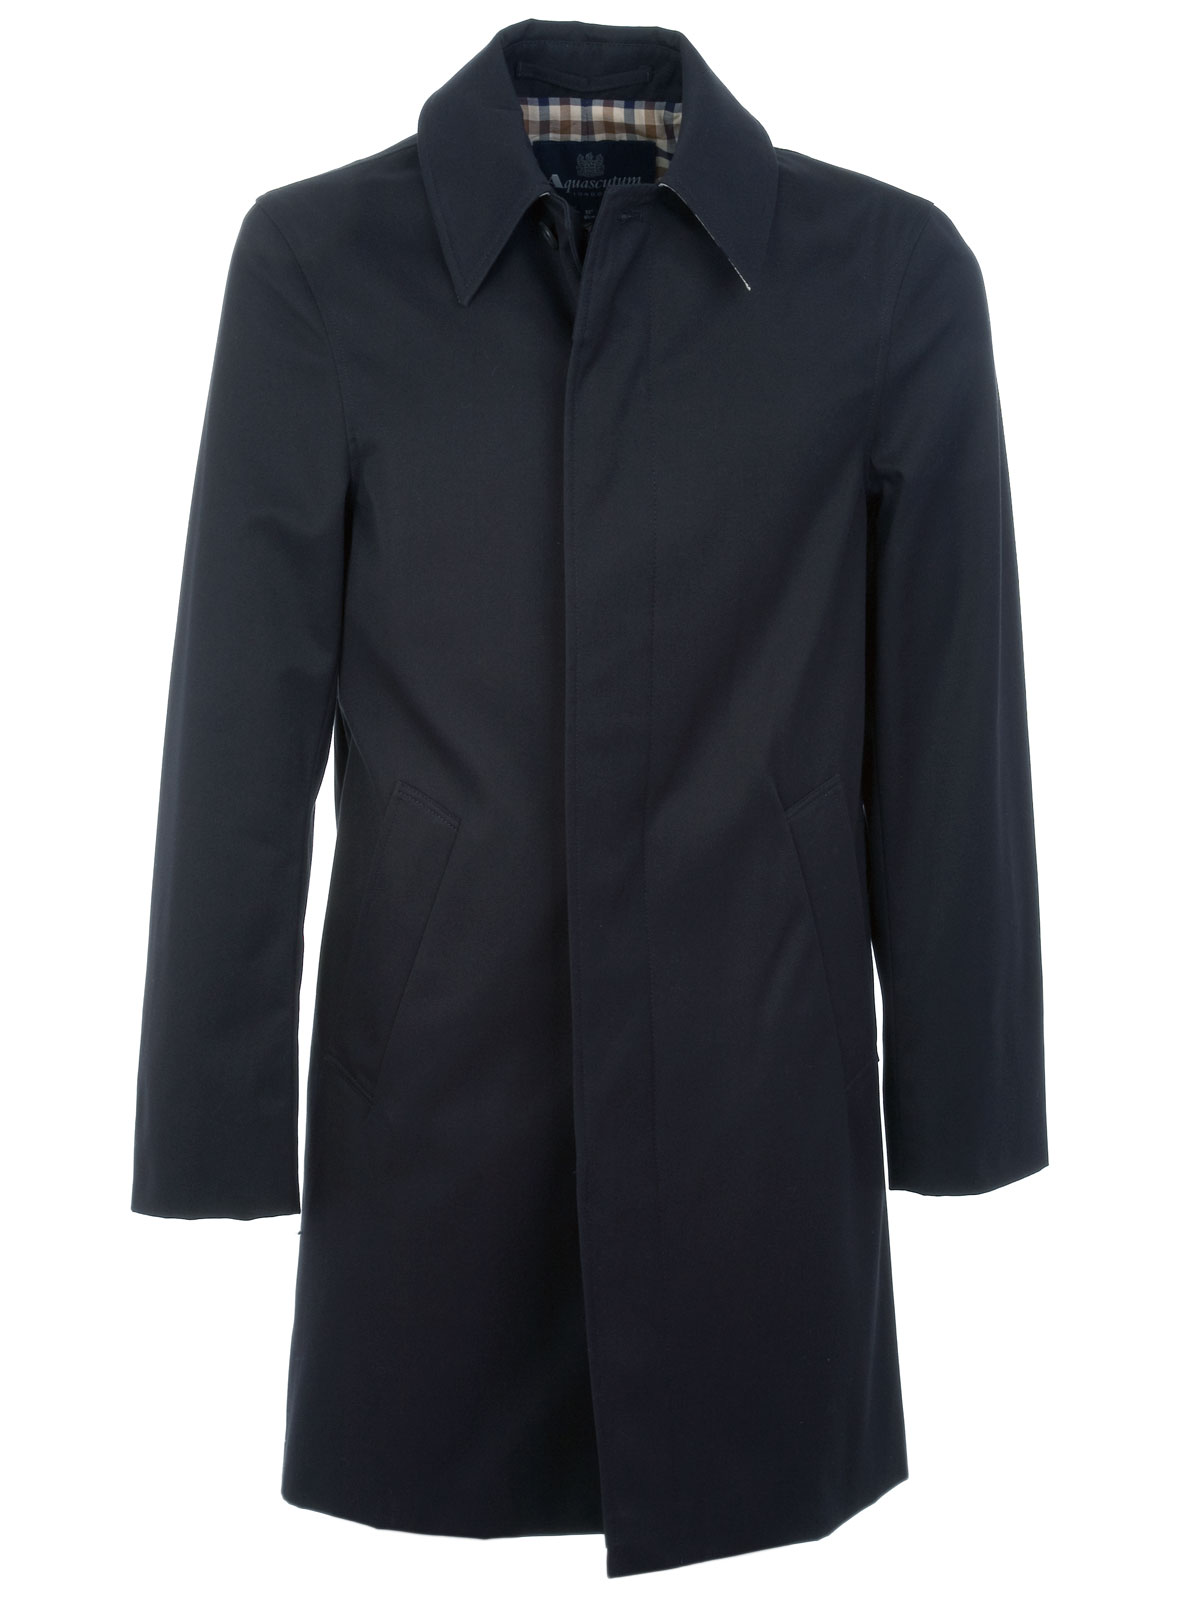 Picture of AQUASCUTUM | Broadgate Raincoat